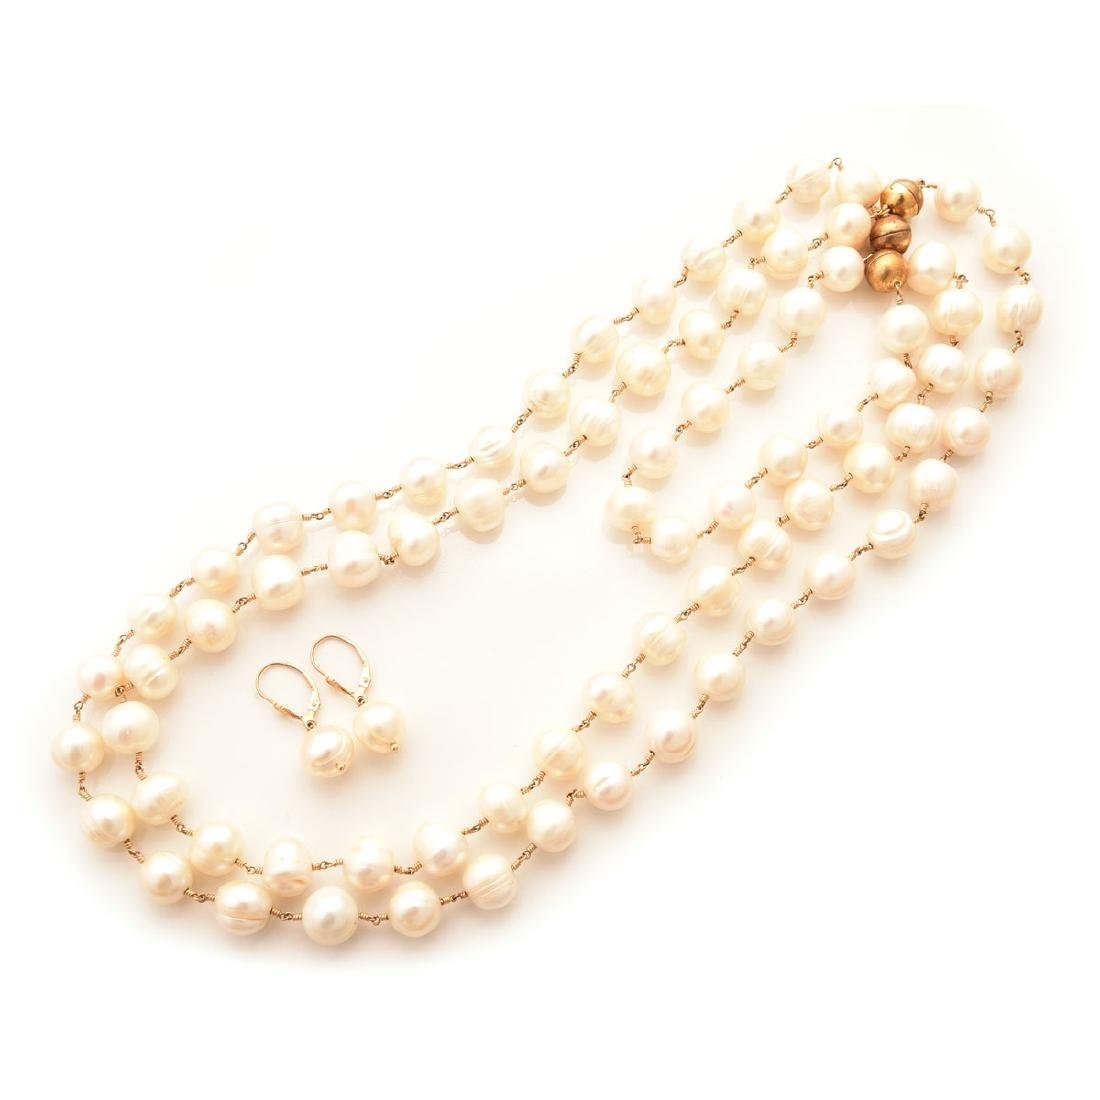 Freshwater Cultured Pearl, Jewelry Suite.